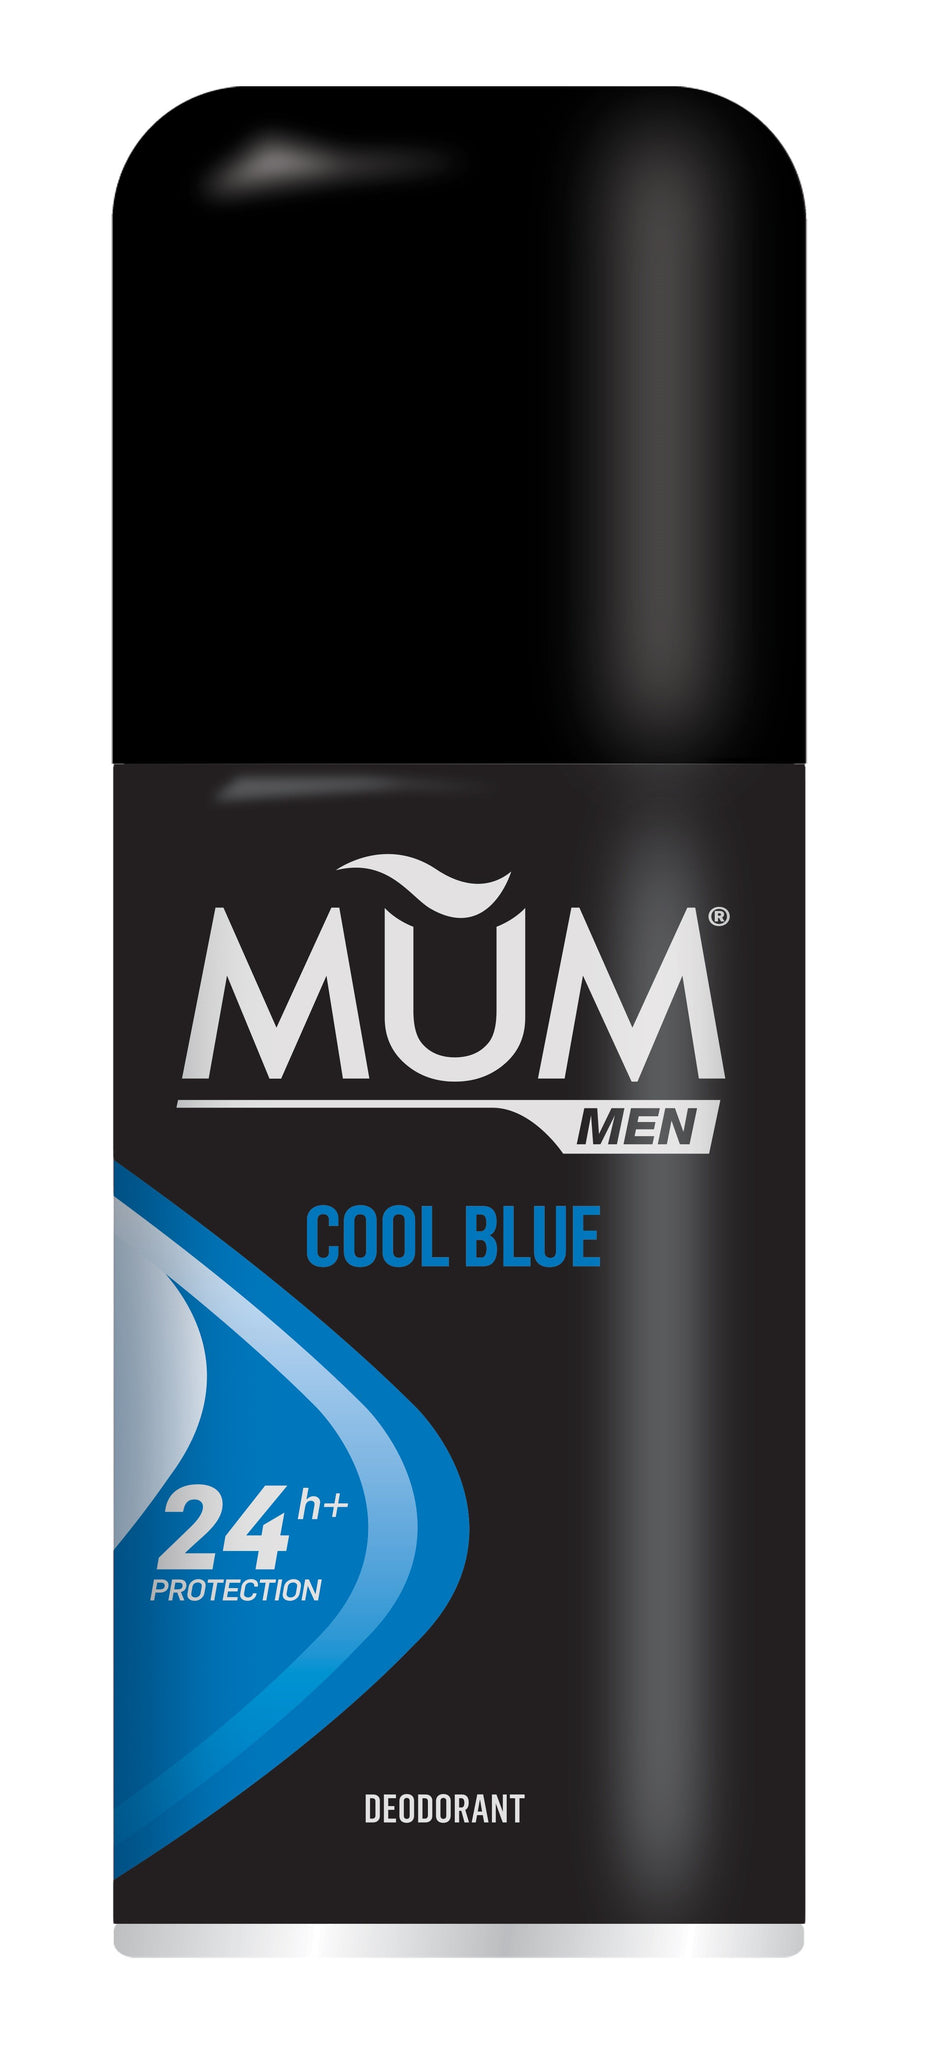 MUM FOR MEN COOL BLUE AEROSOL 36-Pack